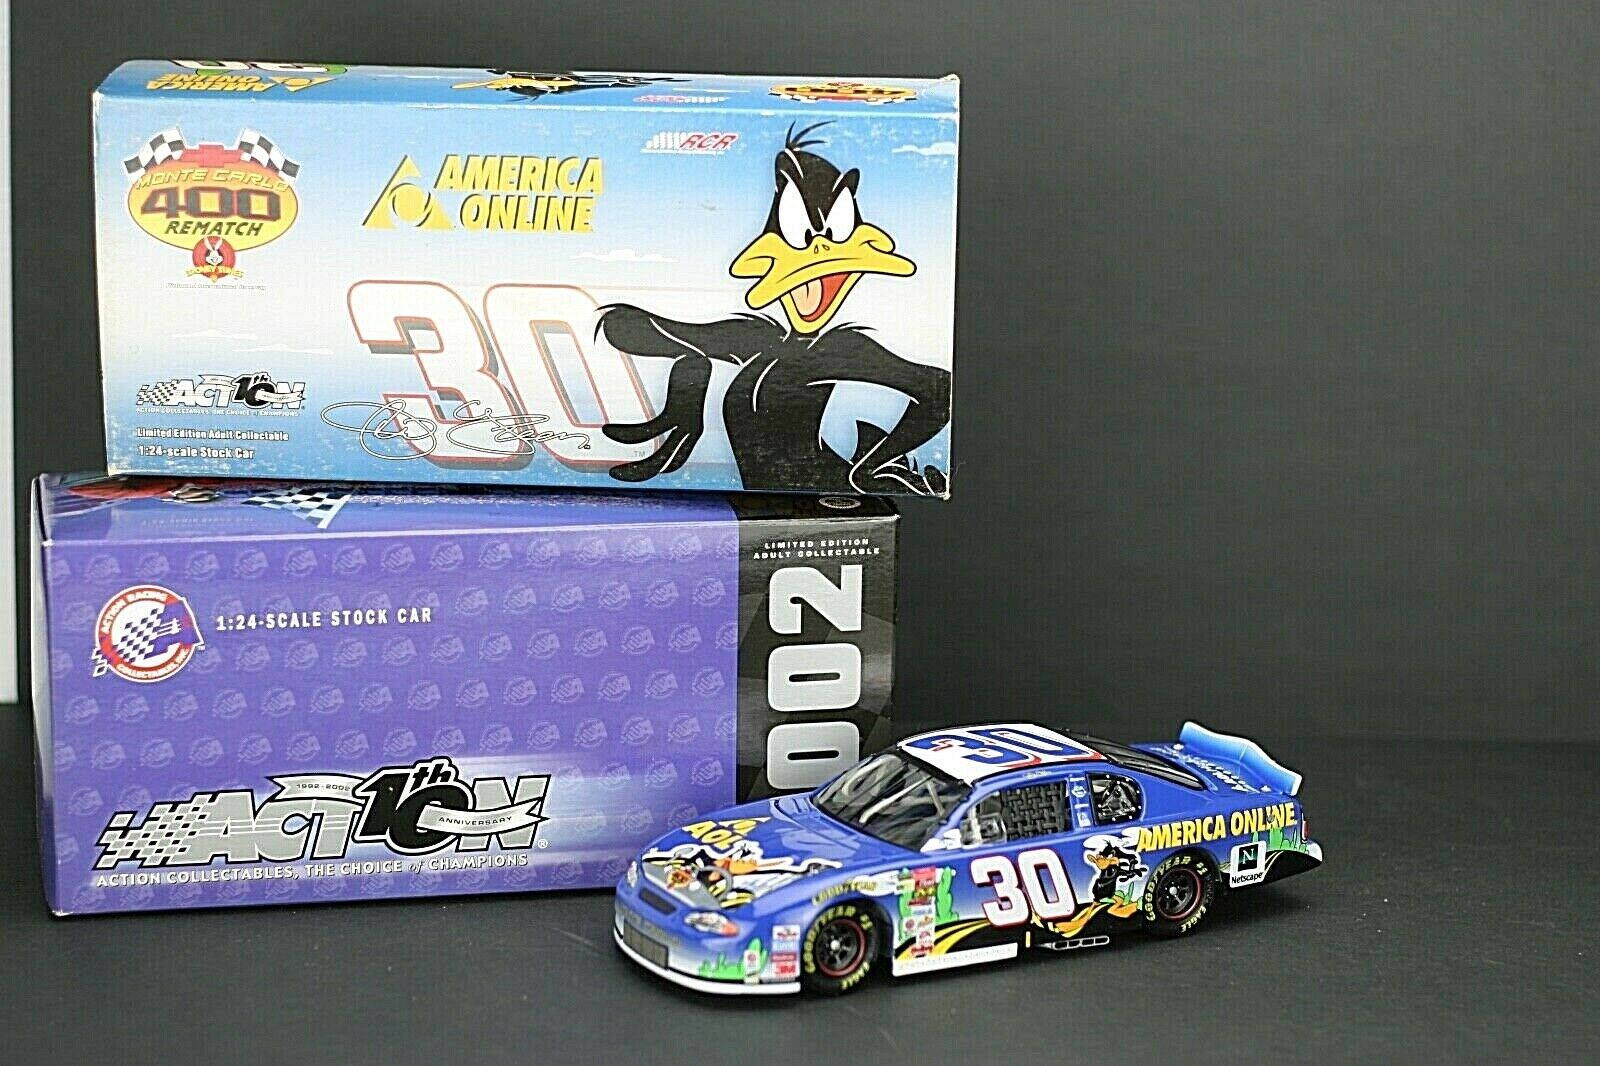 1 24 ACTION NASCAR 2002 MONTE CARLO JEFF GREEN  AOL LOONEY TUNES REMATCH